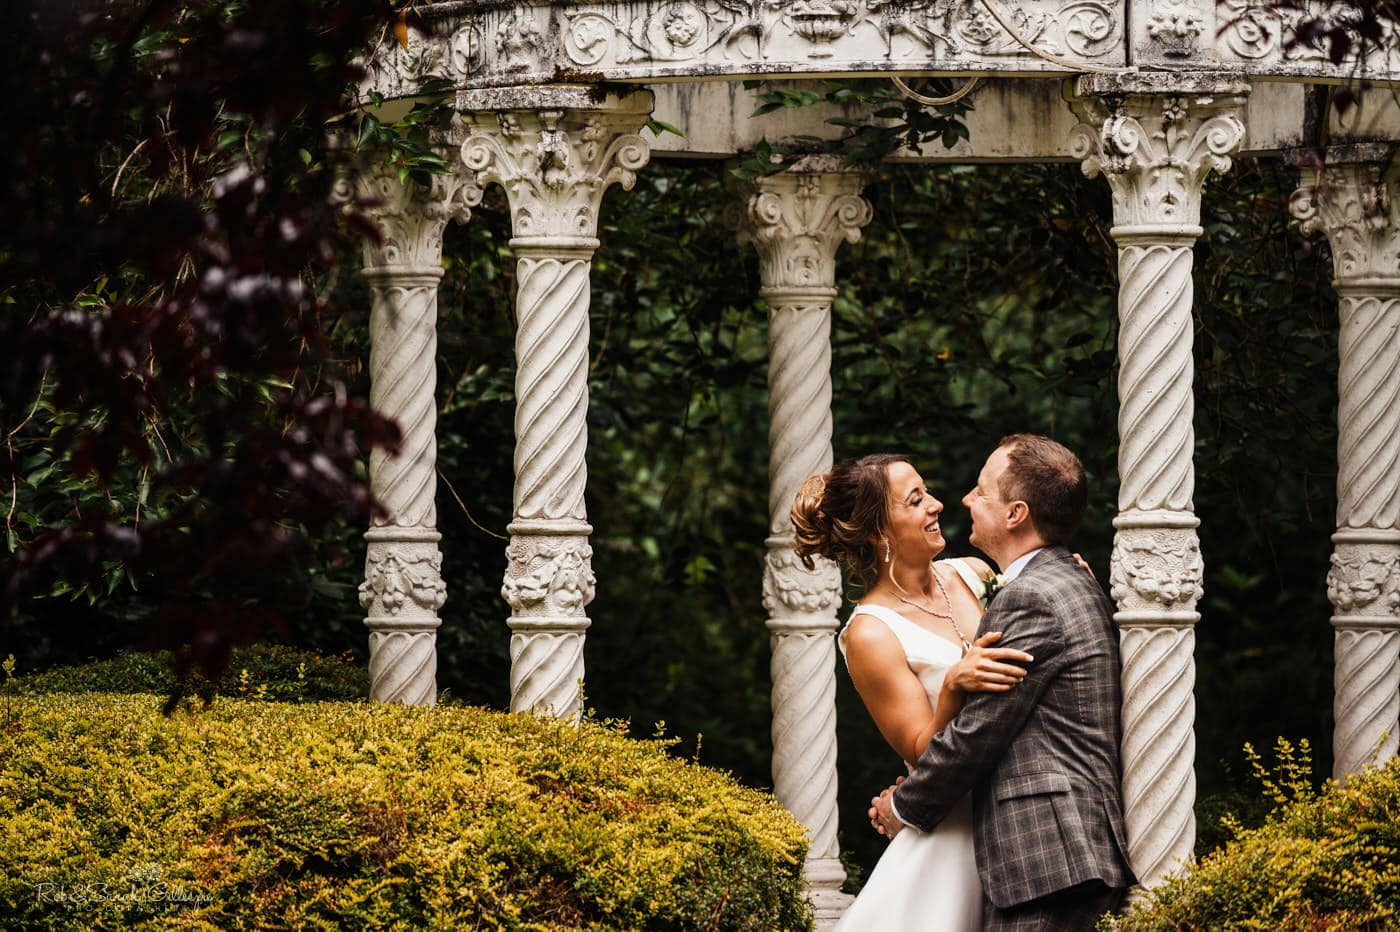 Newly married couple under decorative dome in gardens